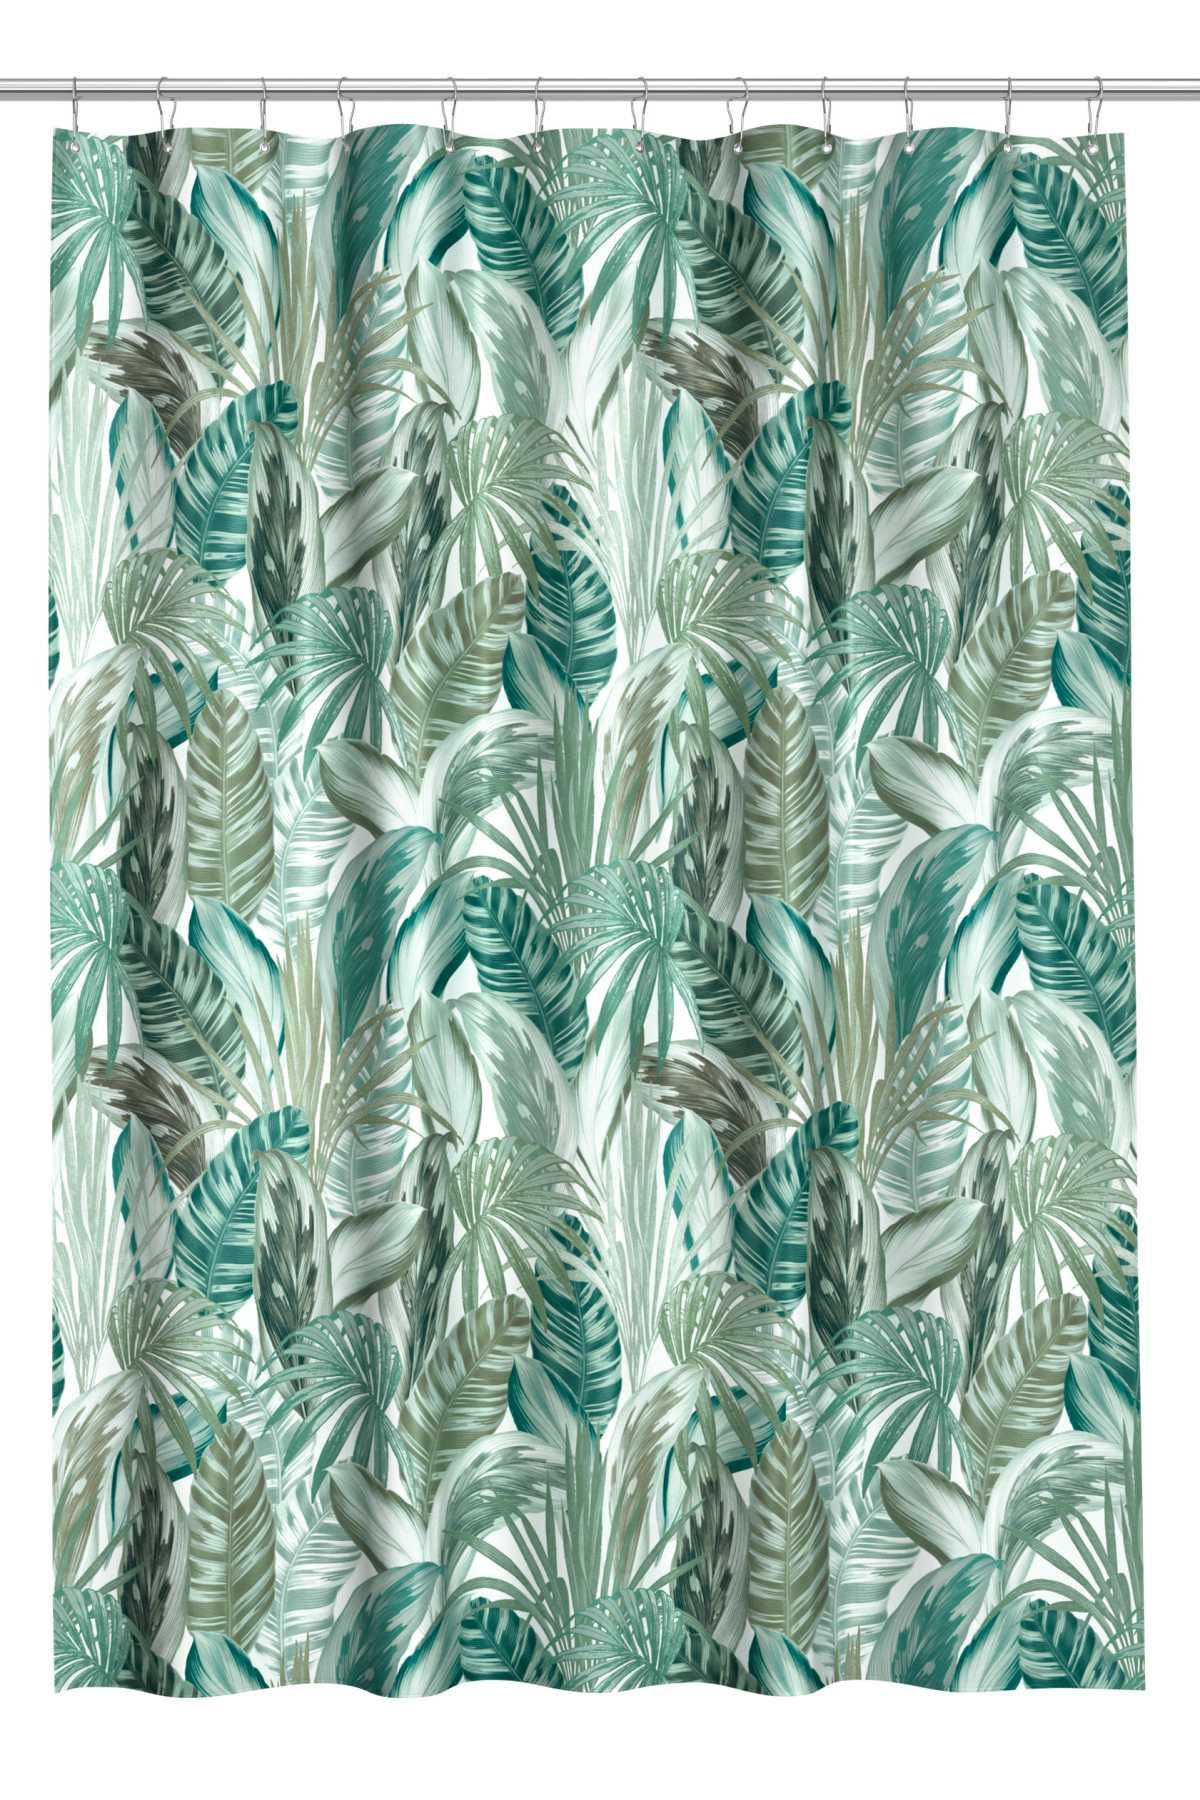 Green Leaf Patterned Shower Curtain In Water Repellent Polyester